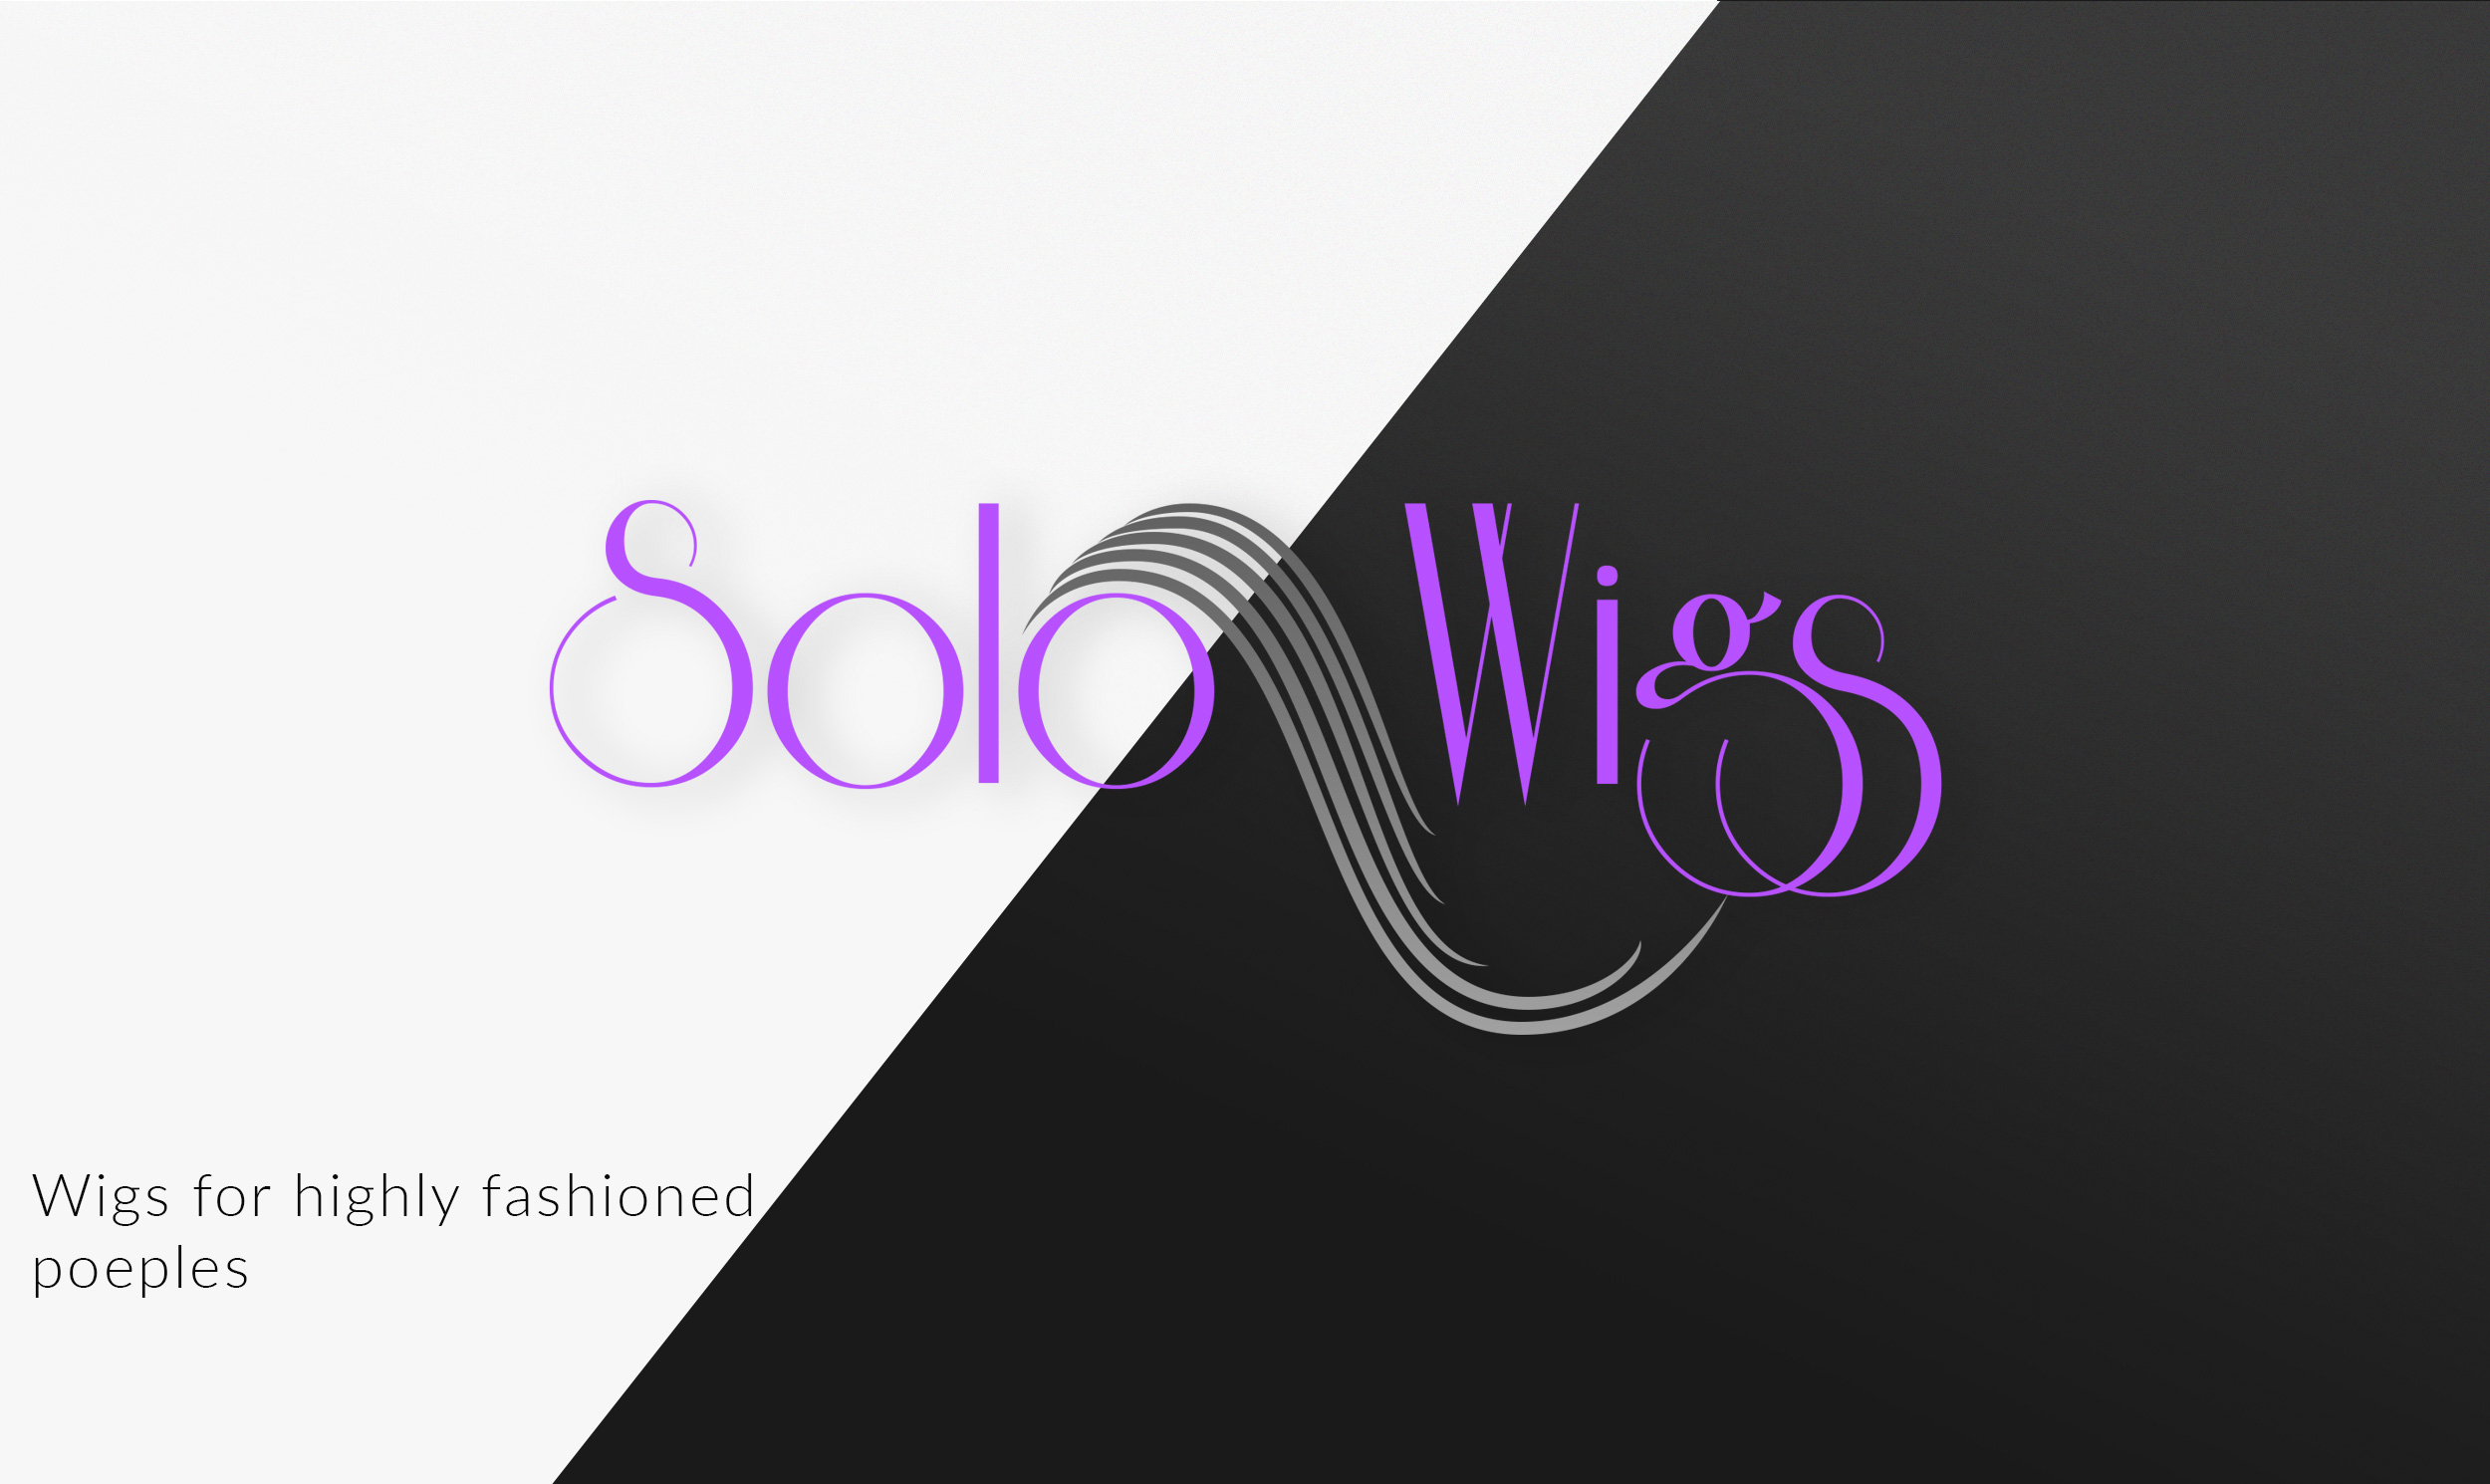 solowigs-front-image